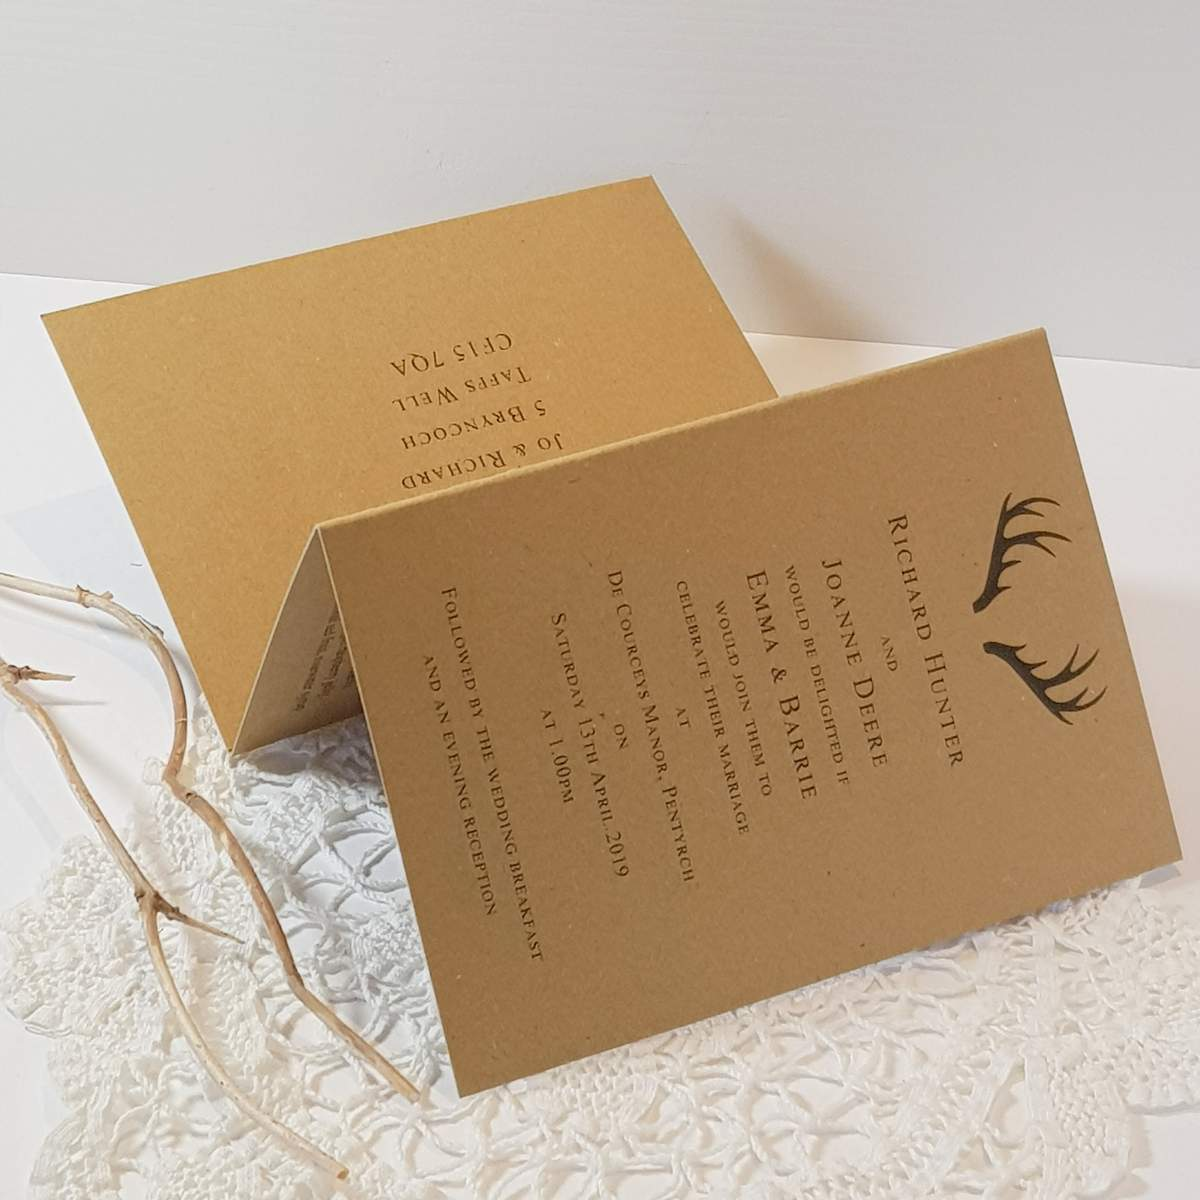 A concertina style wedding invitation made from recycled brown kraft card, featuring a printed stag antler design